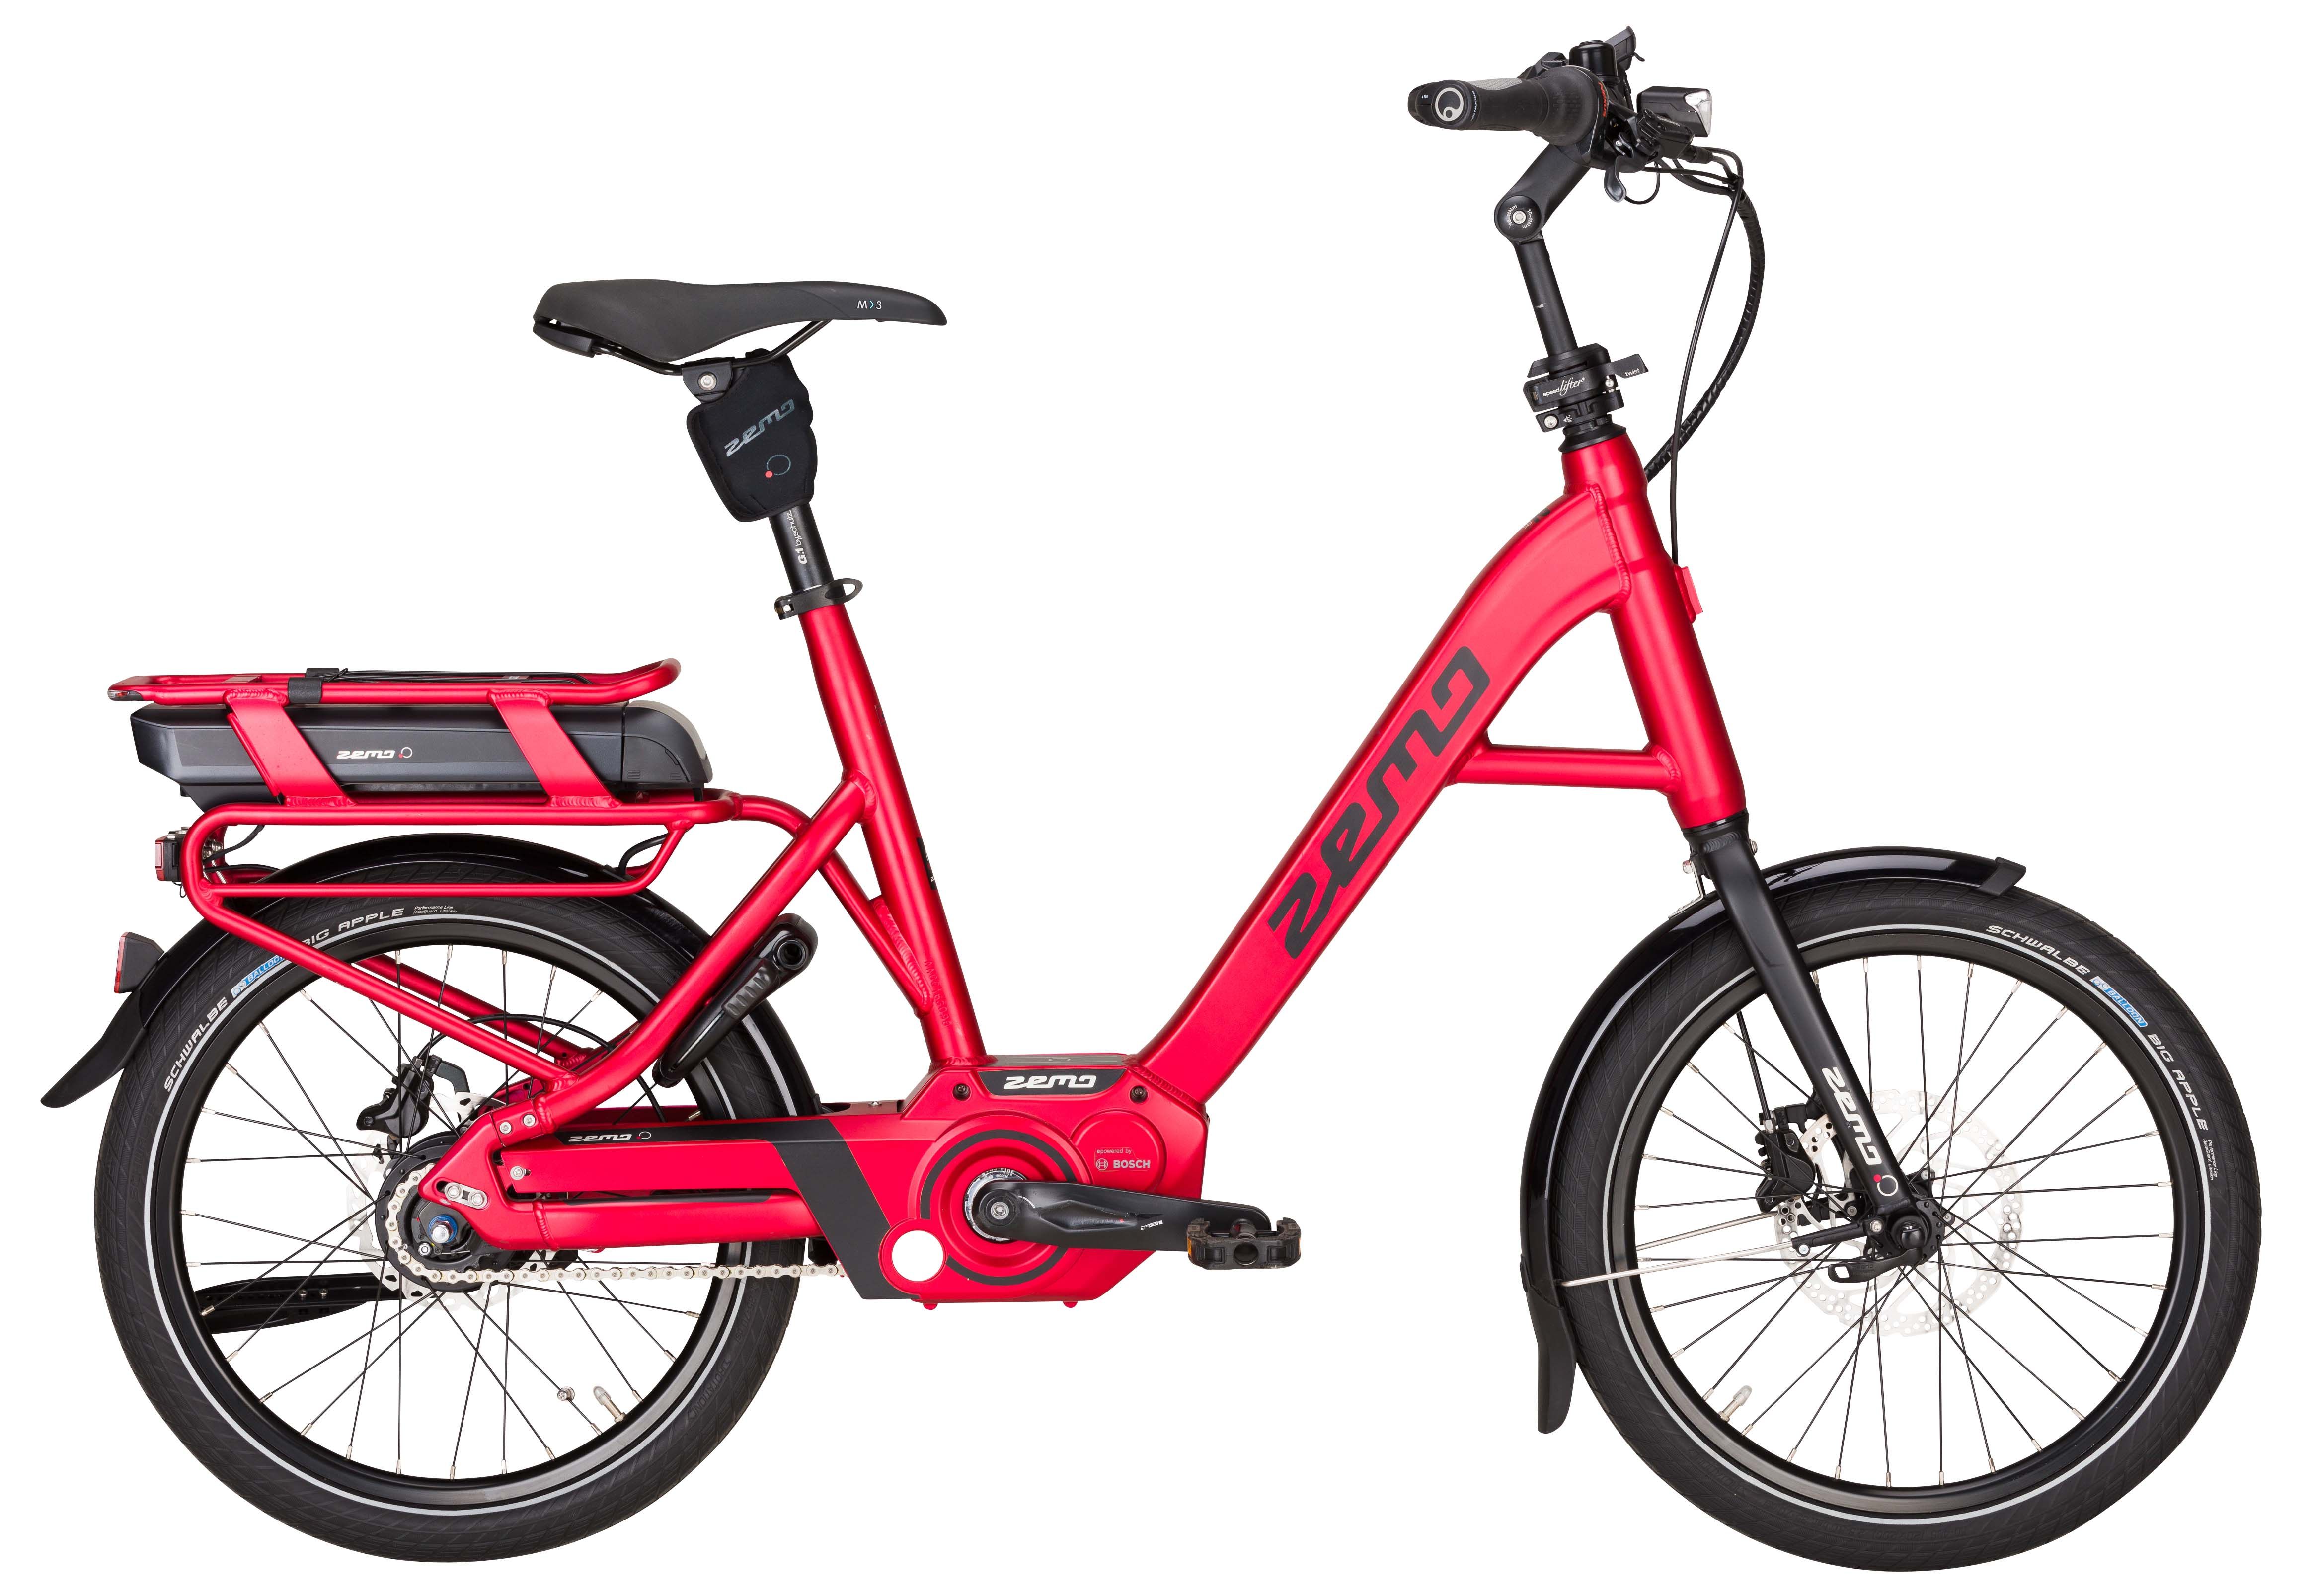 Bici Zemo Scooter ruota R20